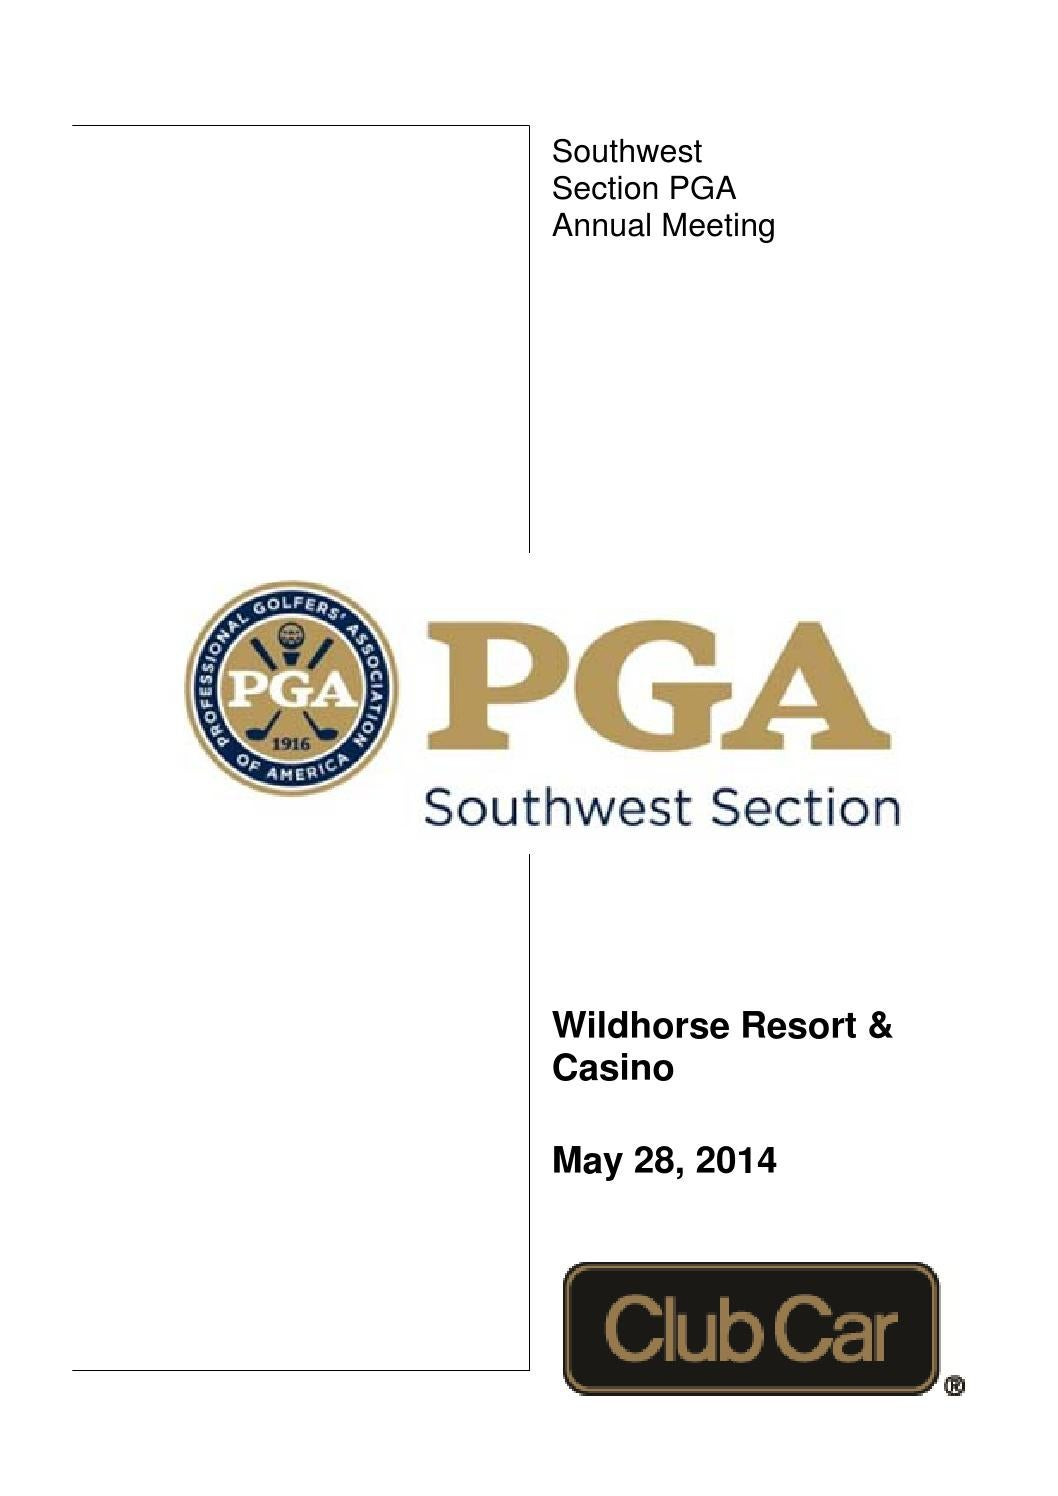 Annual meeting Booklet by Southwest Section PGA - Issuu